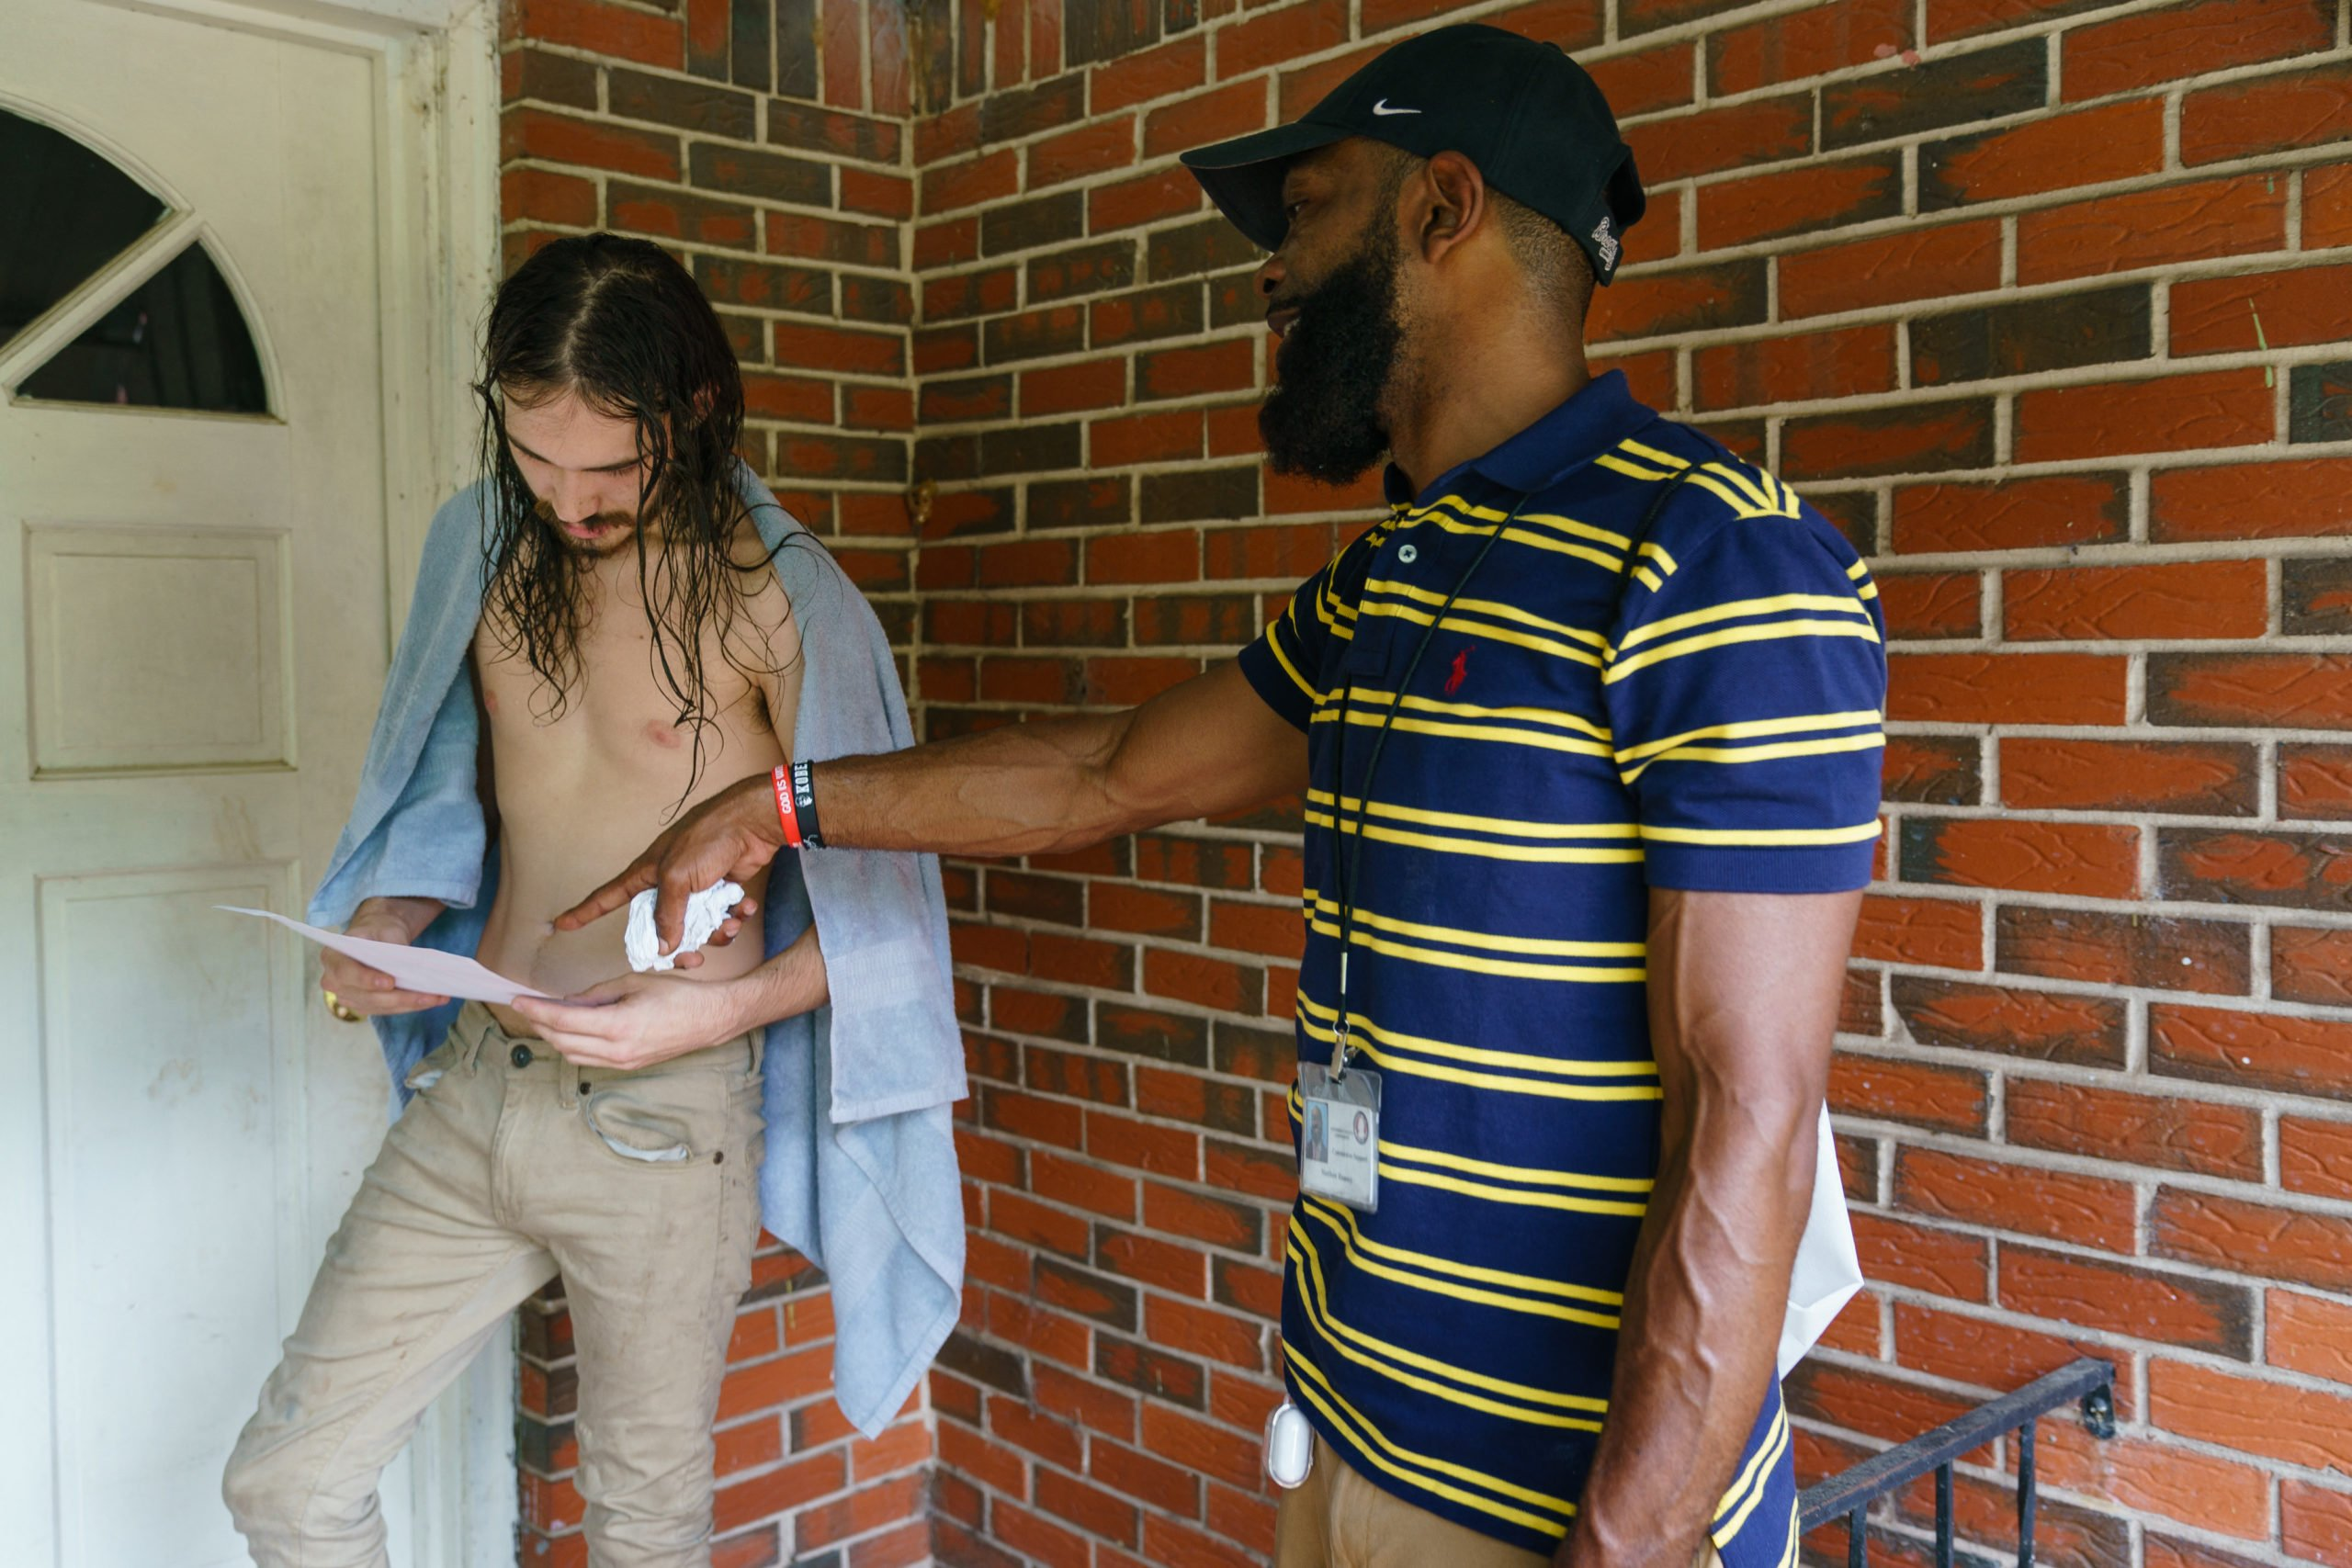 A staff member of City Councilwoman Sheila Tyson speaks to a resident during a door-knocking outreach effort to inform people about an upcoming COVID-19 vaccination event, on Wednesday, June 30, 2021, in Birmingham, Alabama. (ELIJAH NOUVELAGE/AFP via Getty Images)